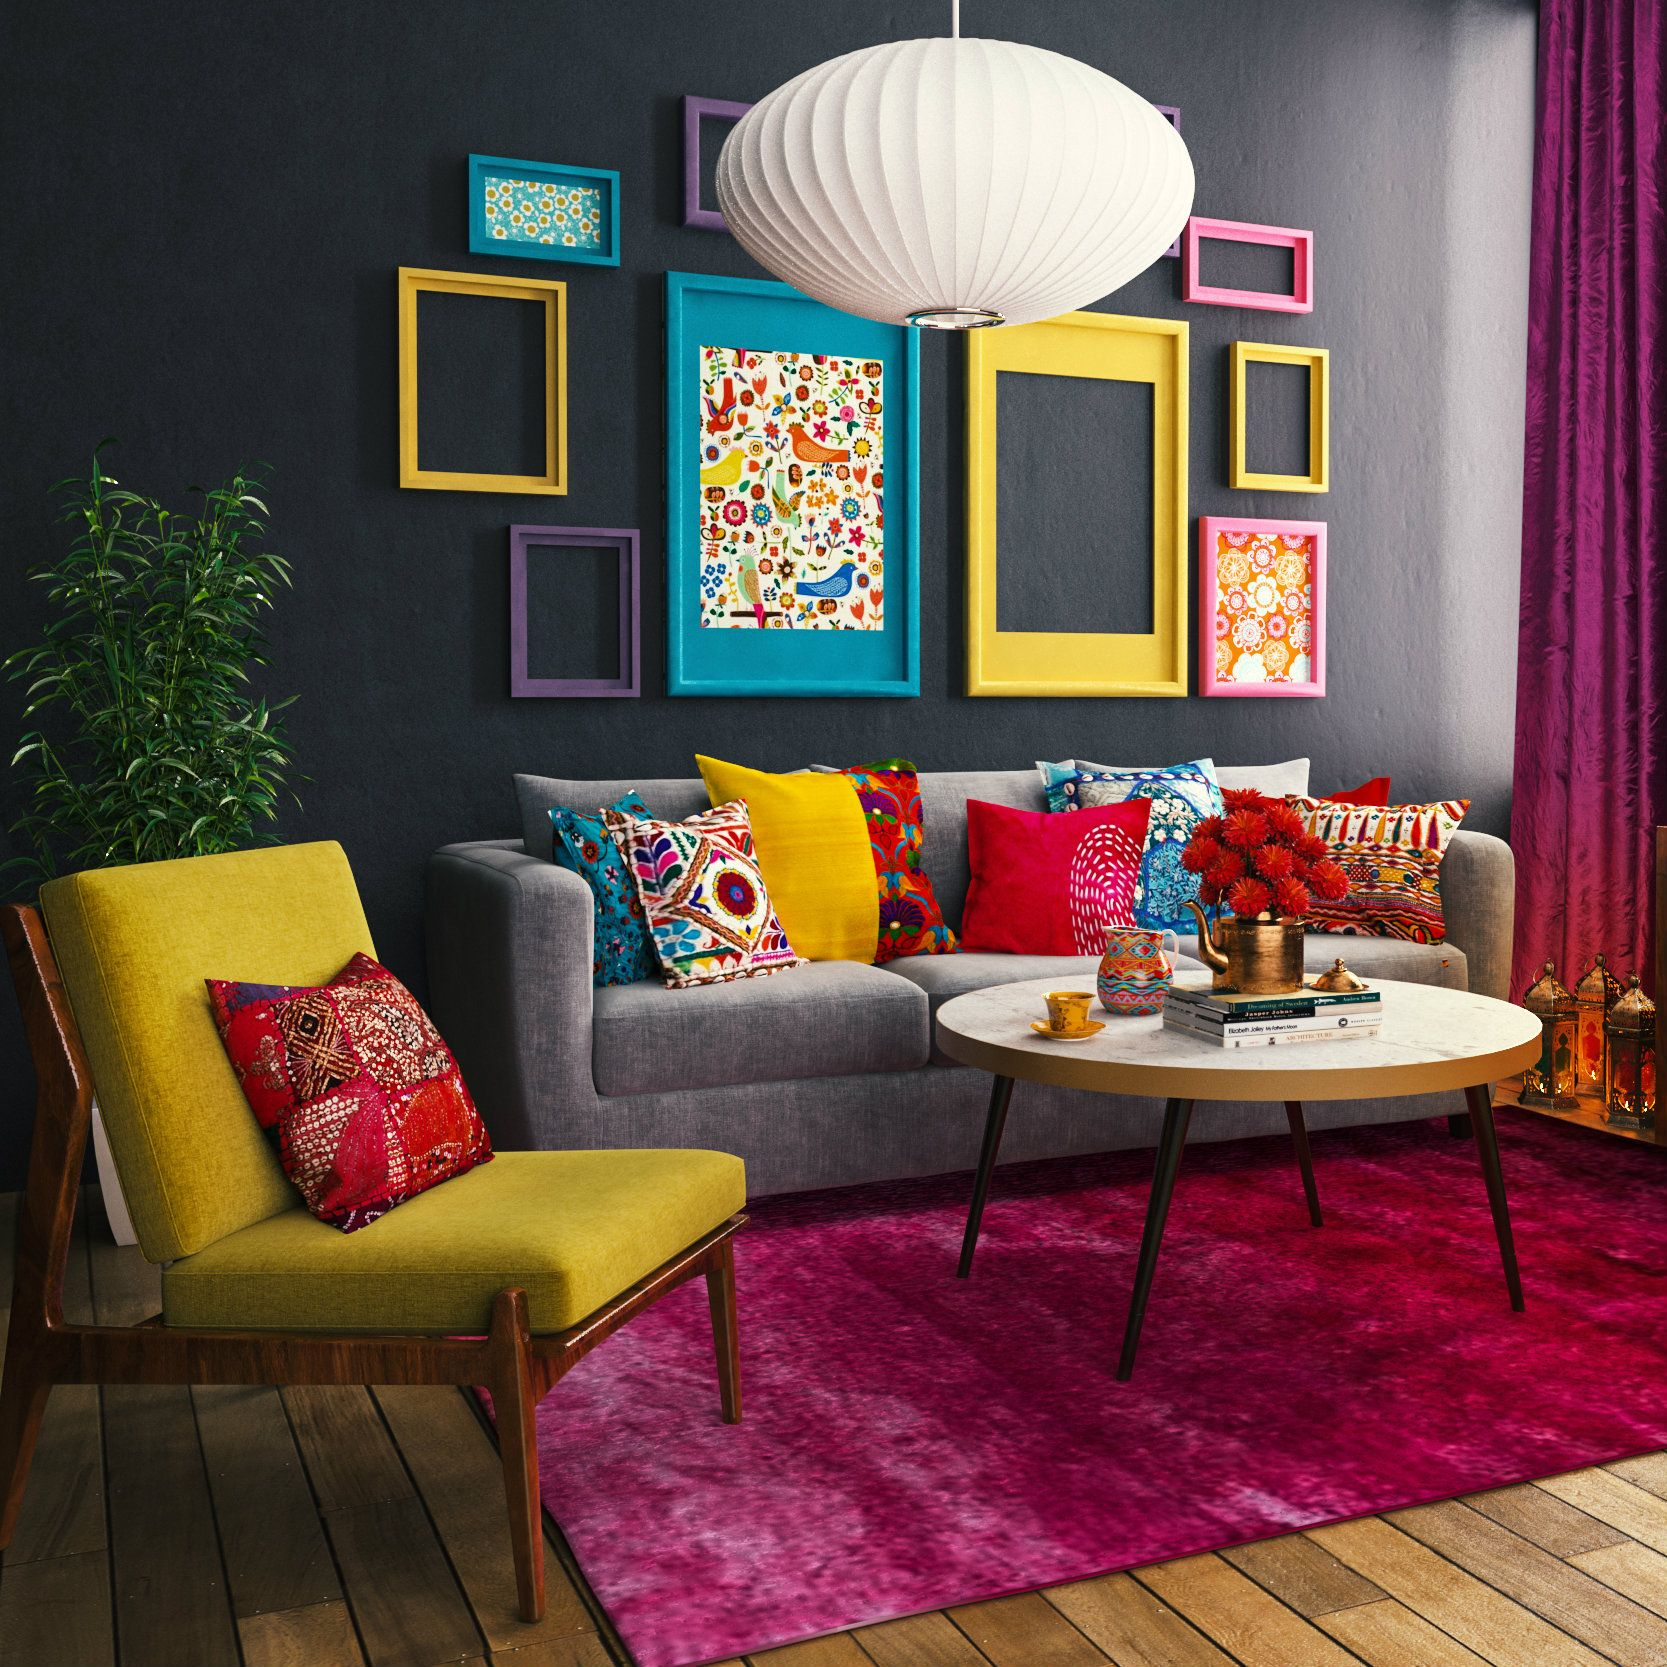 Colorful Living Room Design Online: Such A Colorful Living Room. We Love It!